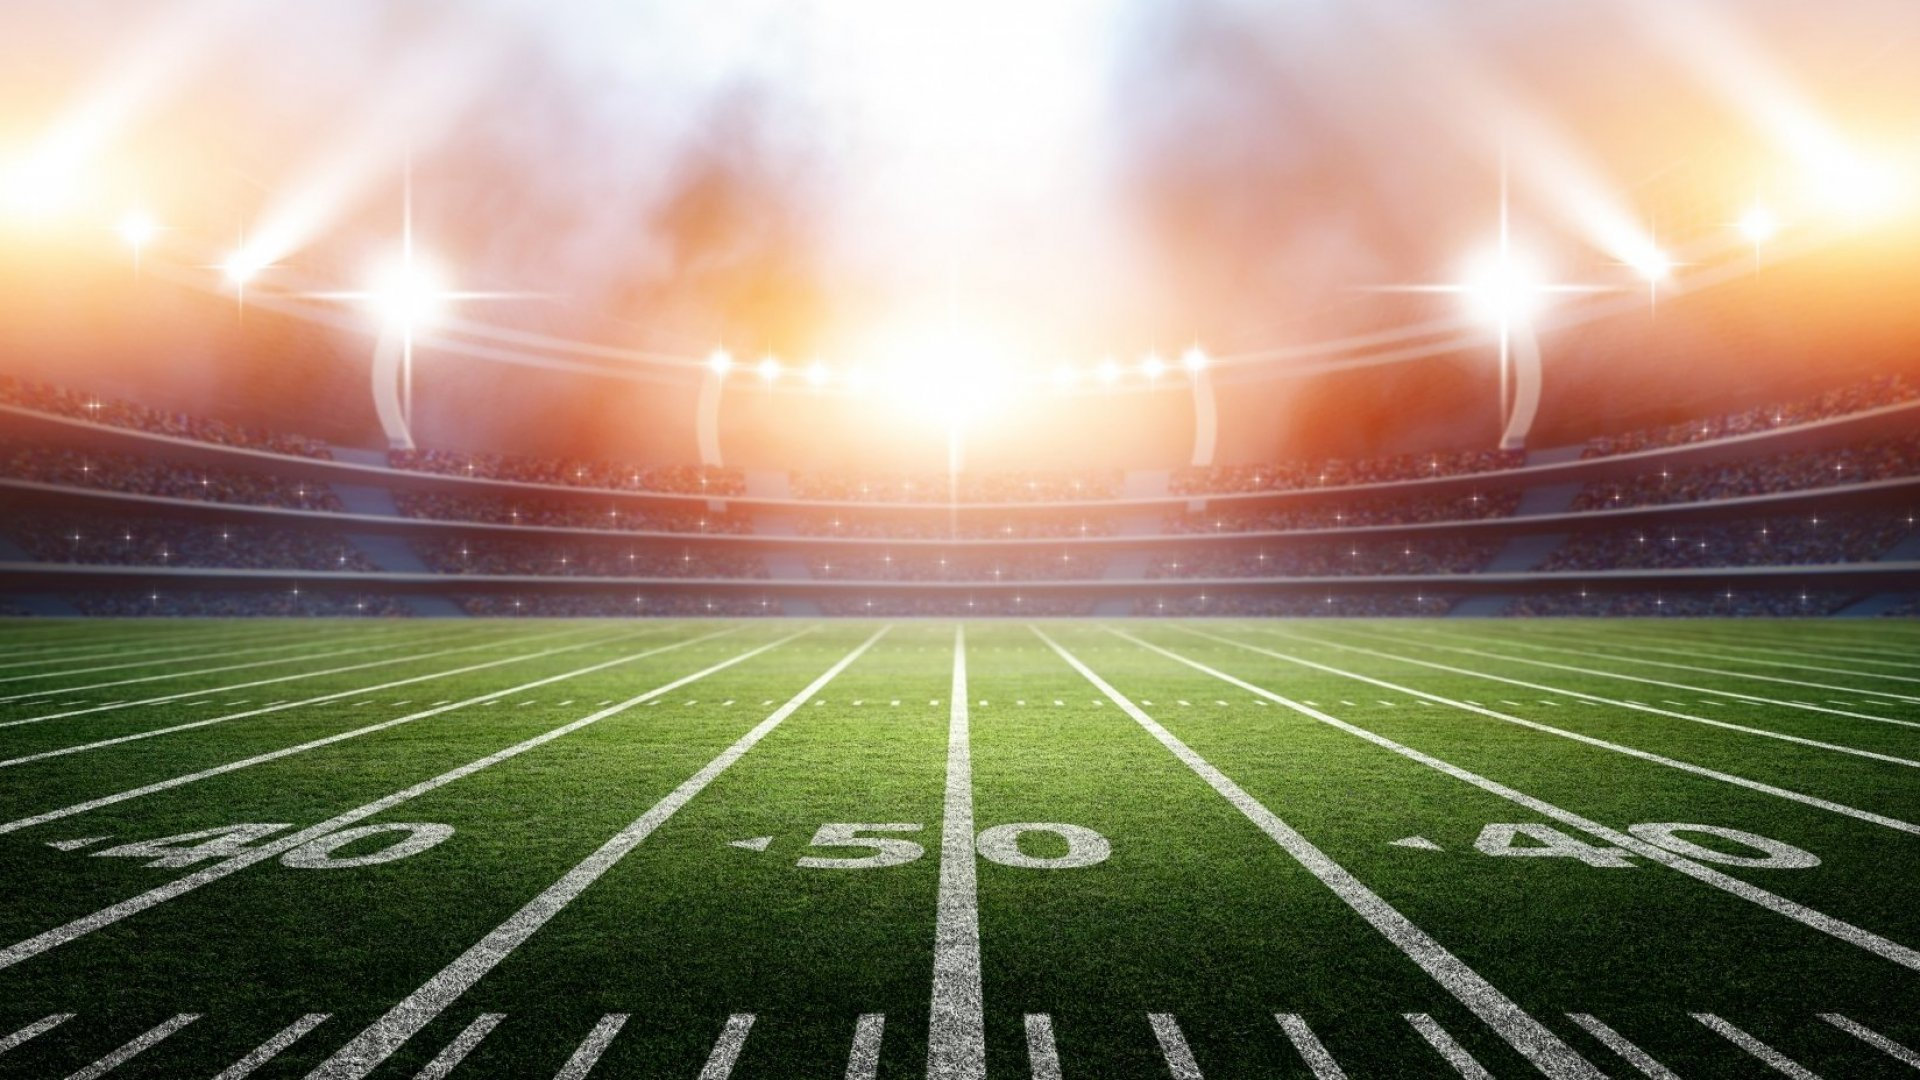 5 Football Principles Every Business Leader Should Know